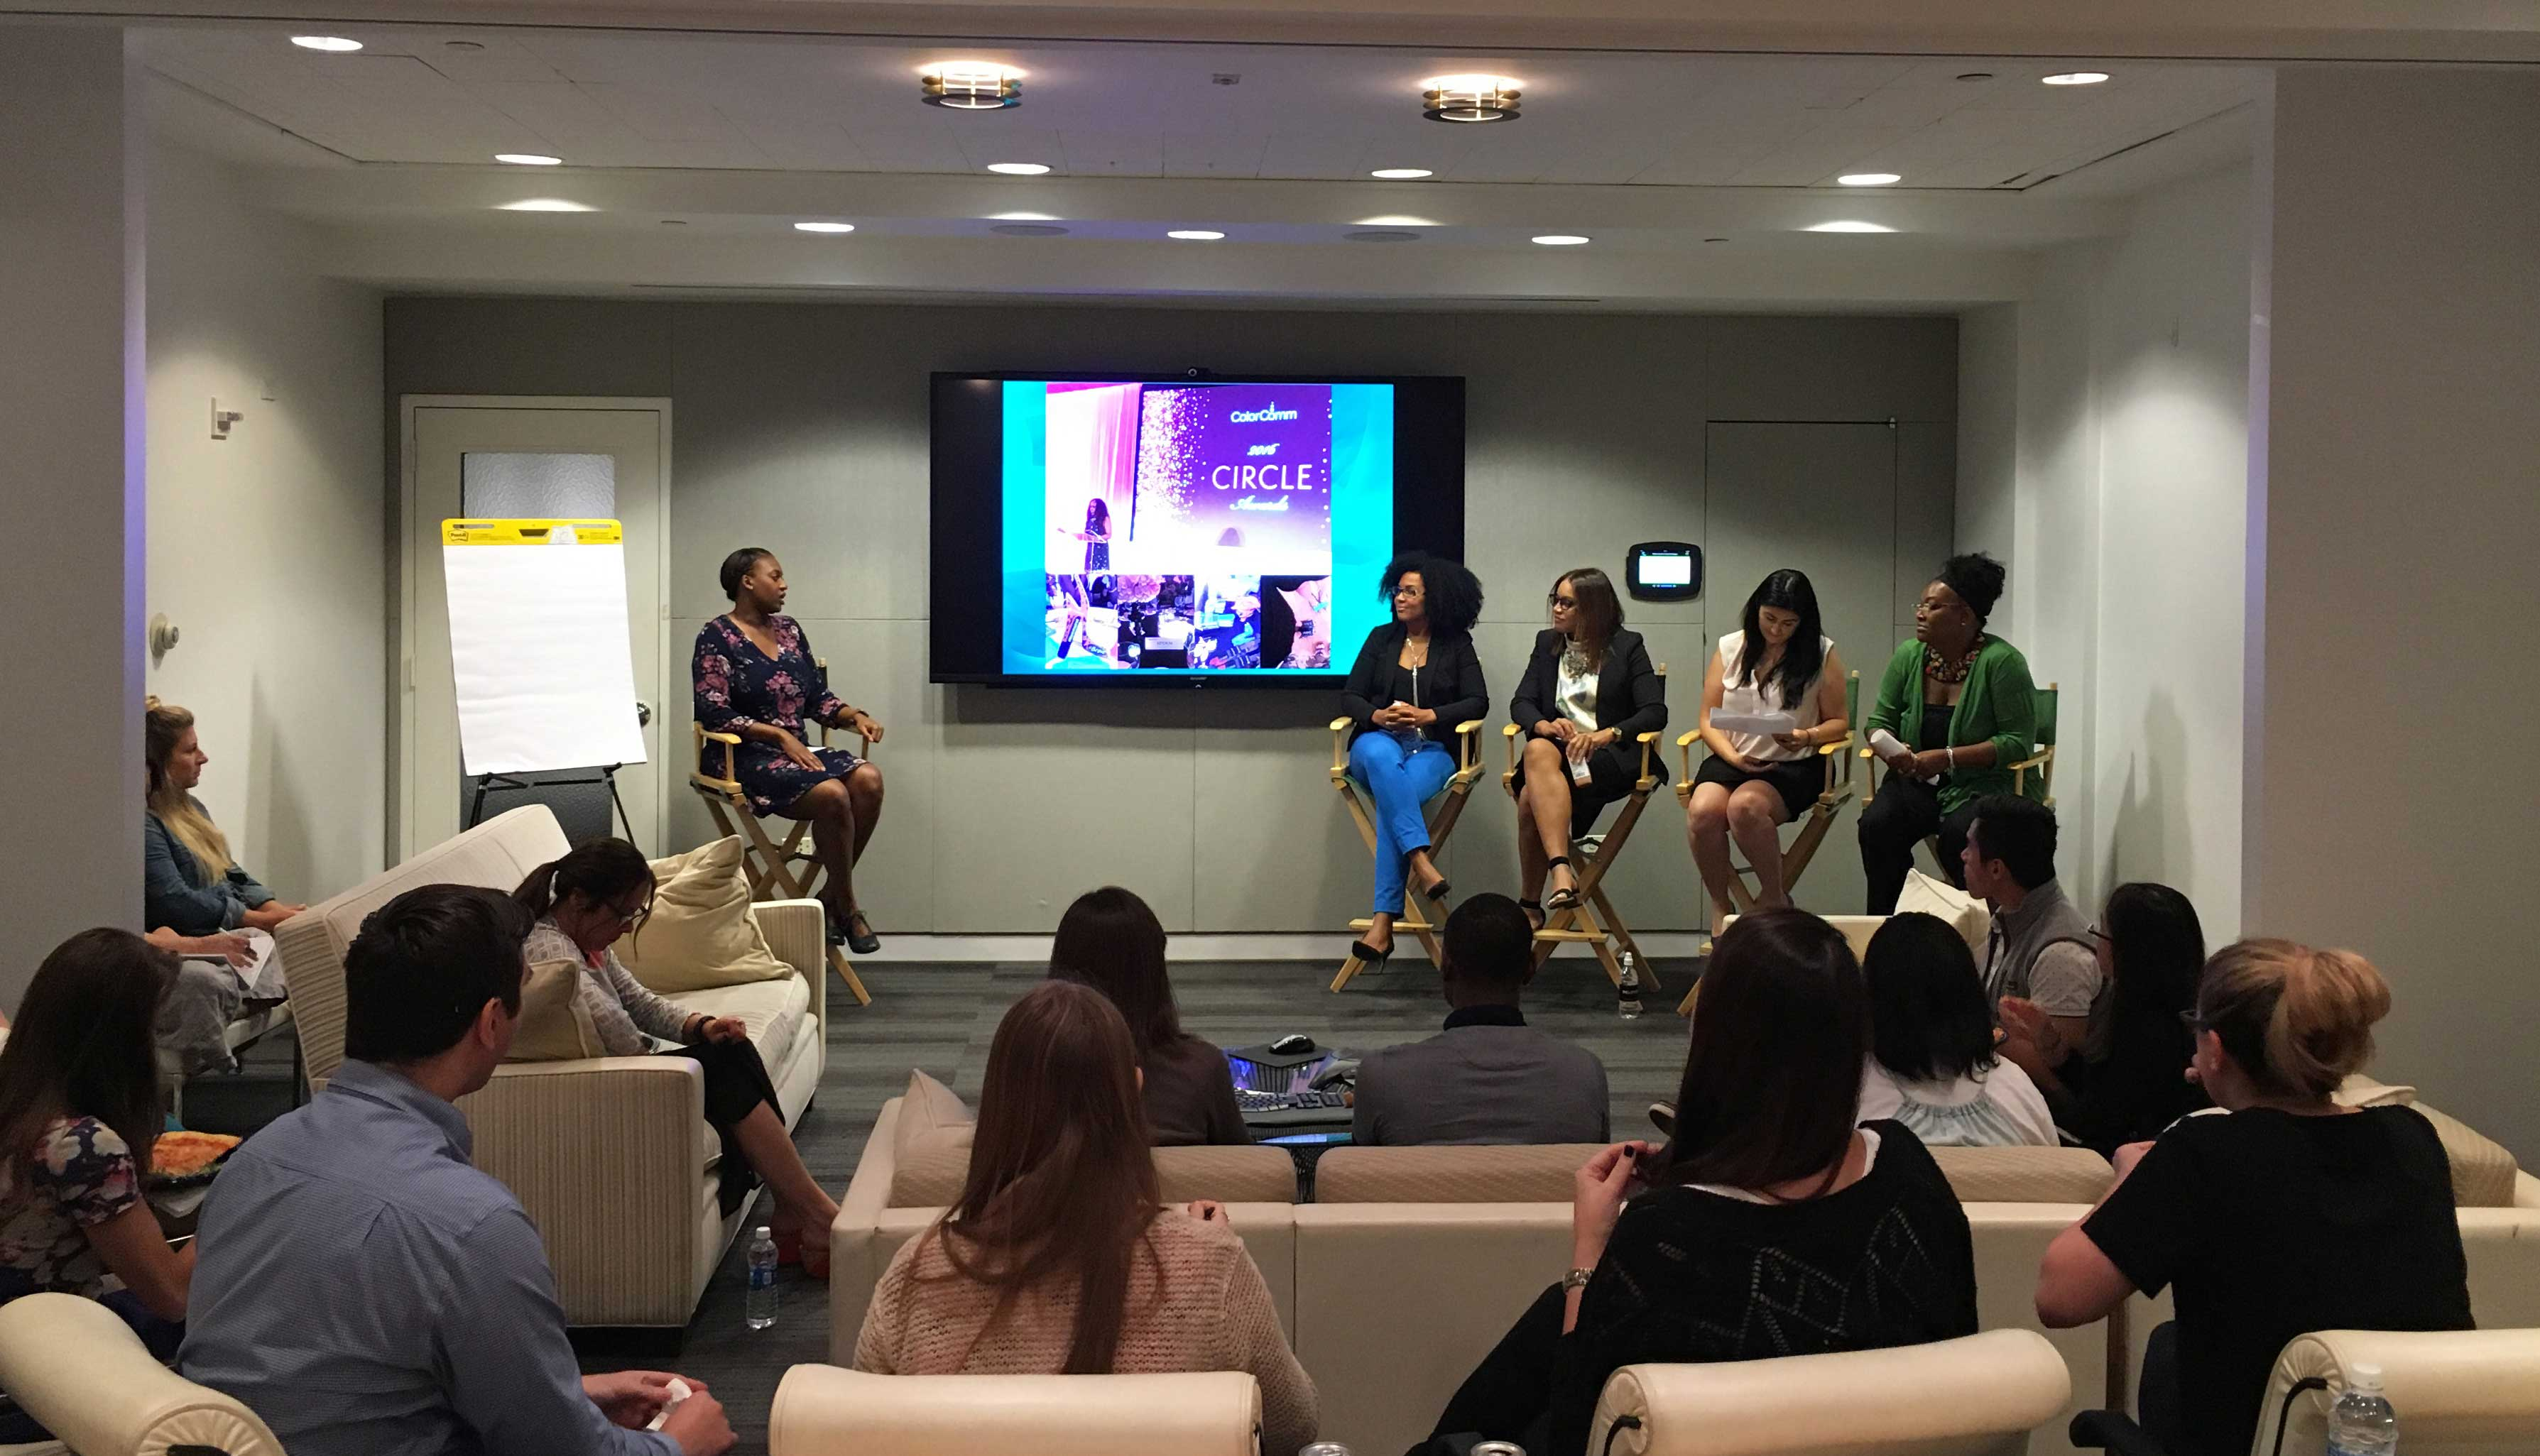 Our colleagues shared lessons from ColorComm and continued the dialogue on Diversity & Inclusion in the workplace in our New York office.